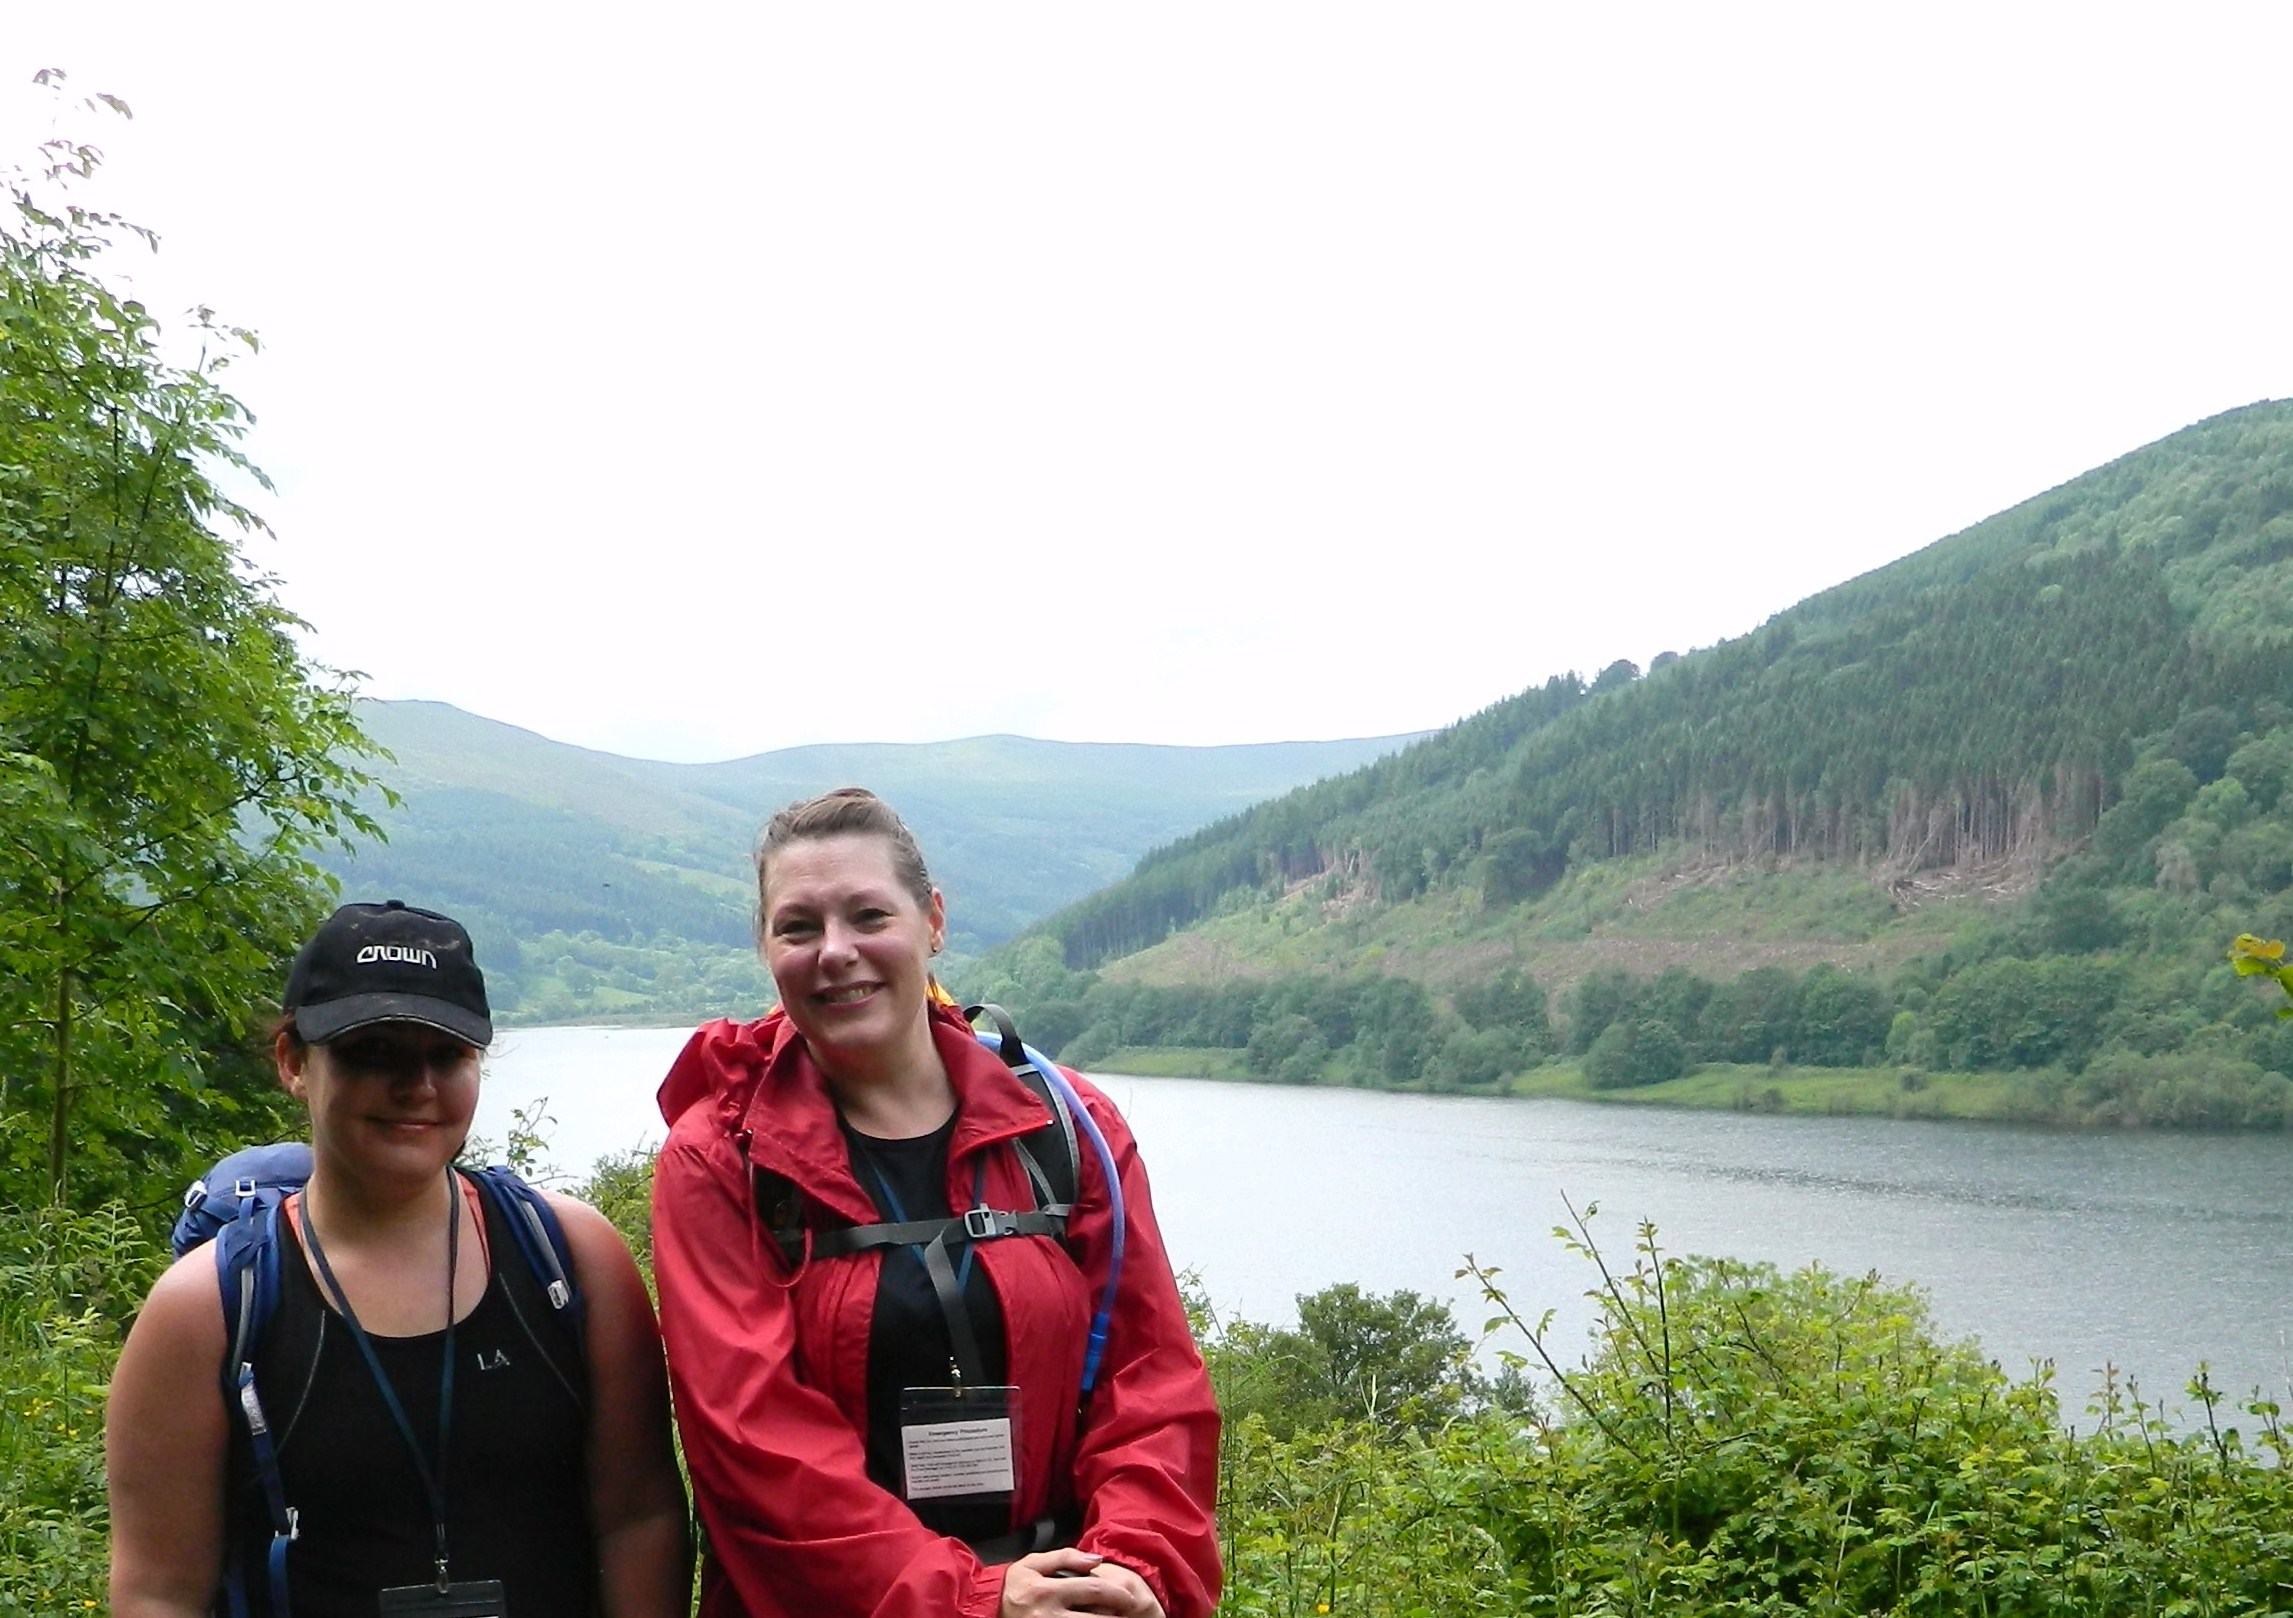 004 Trekfest 2014   The Brecon Beacons